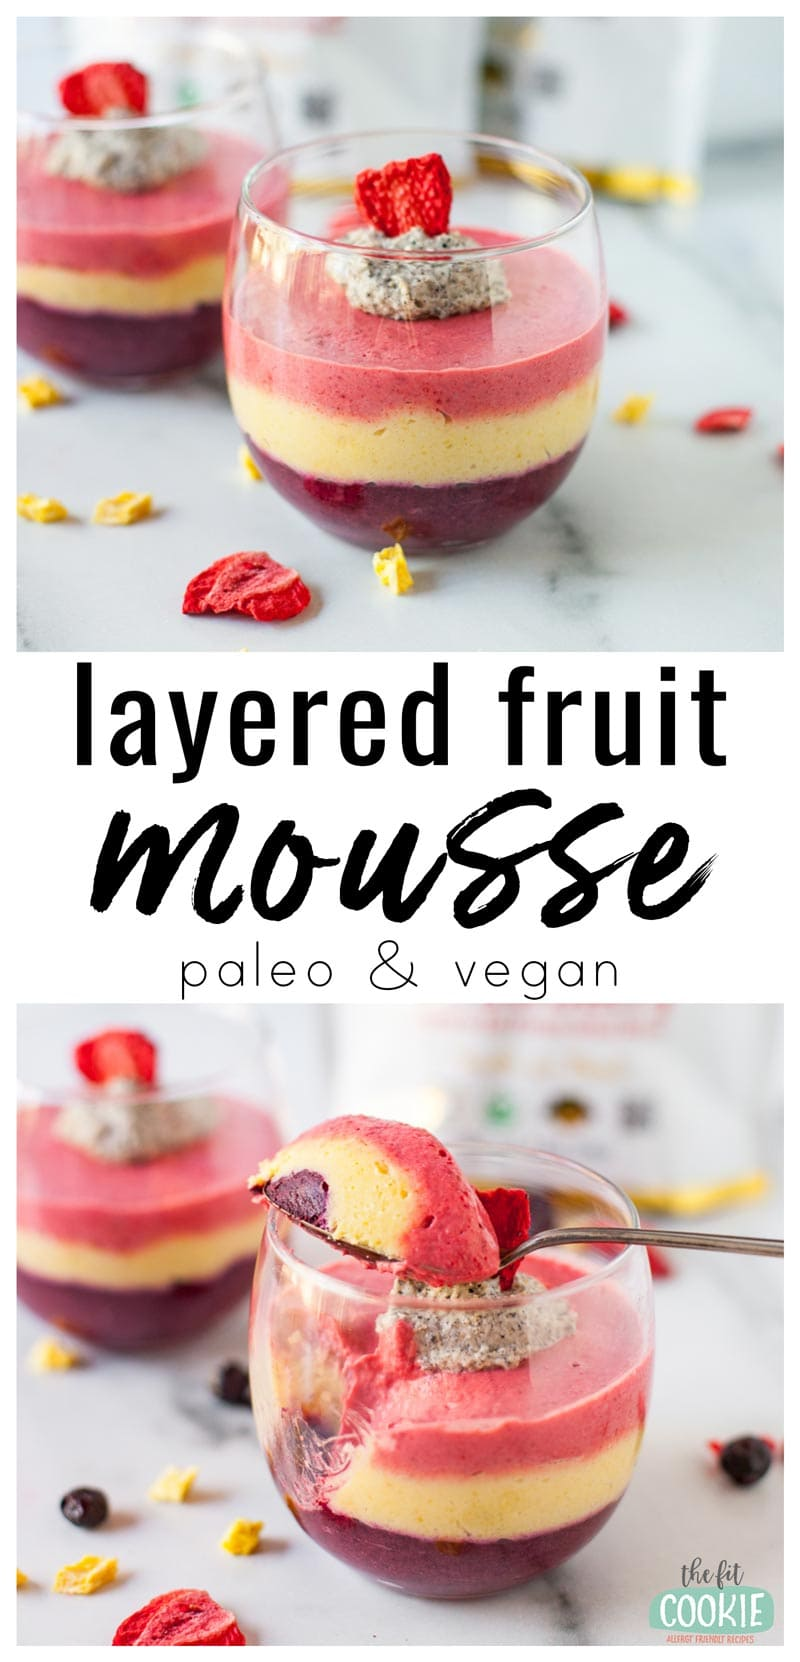 photo collage of vegan layered fruit mousse in glass